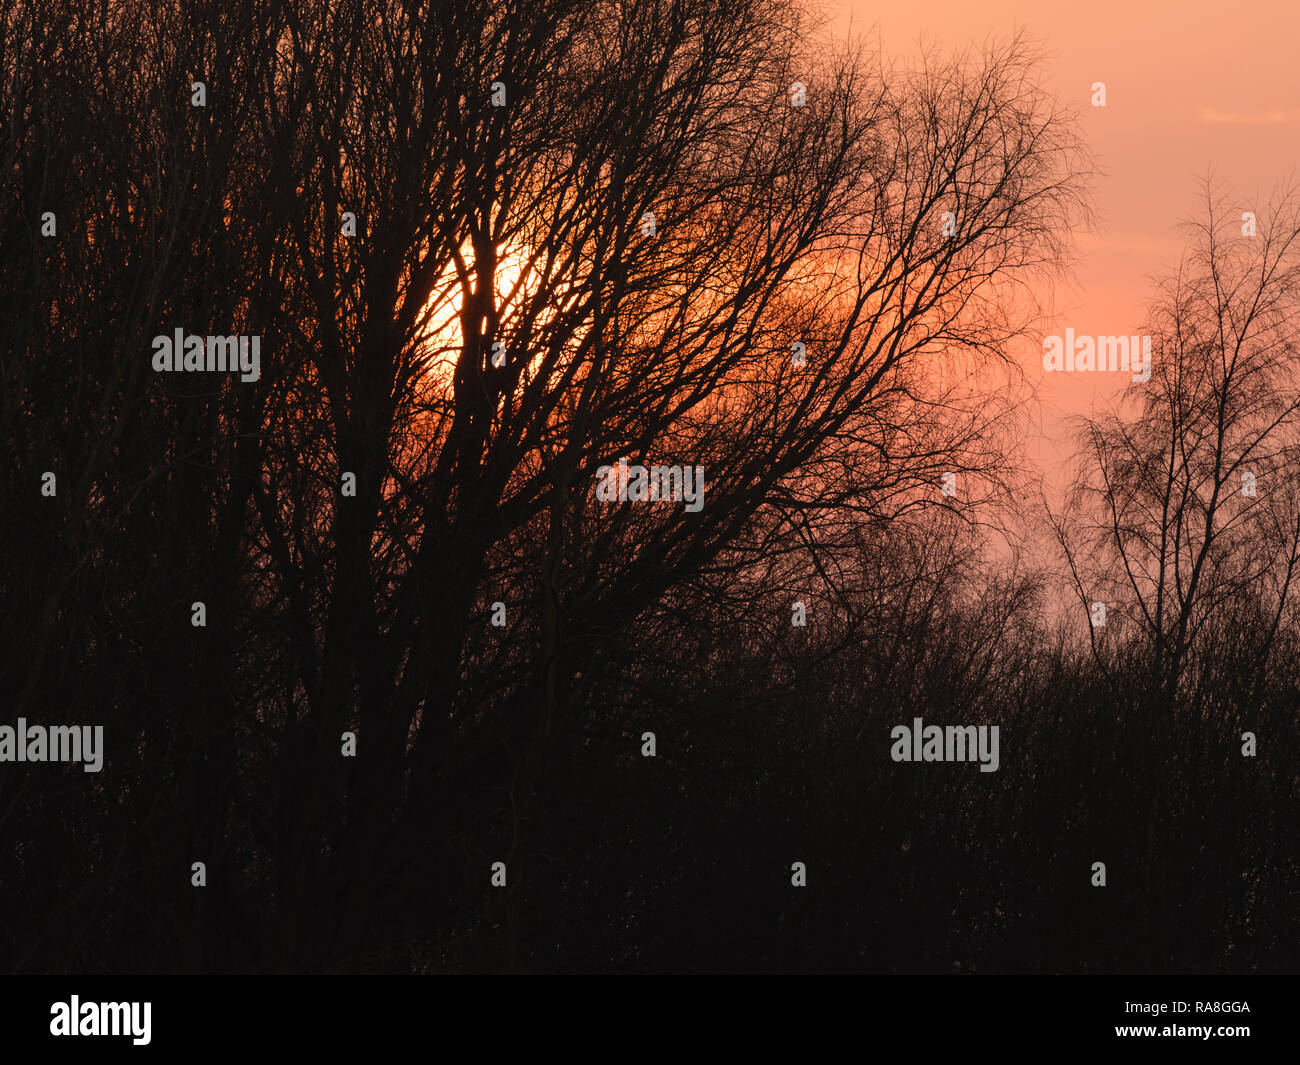 An atmospheric image of bare tree branches silhouetted against the setting sun and red sky. - Stock Image